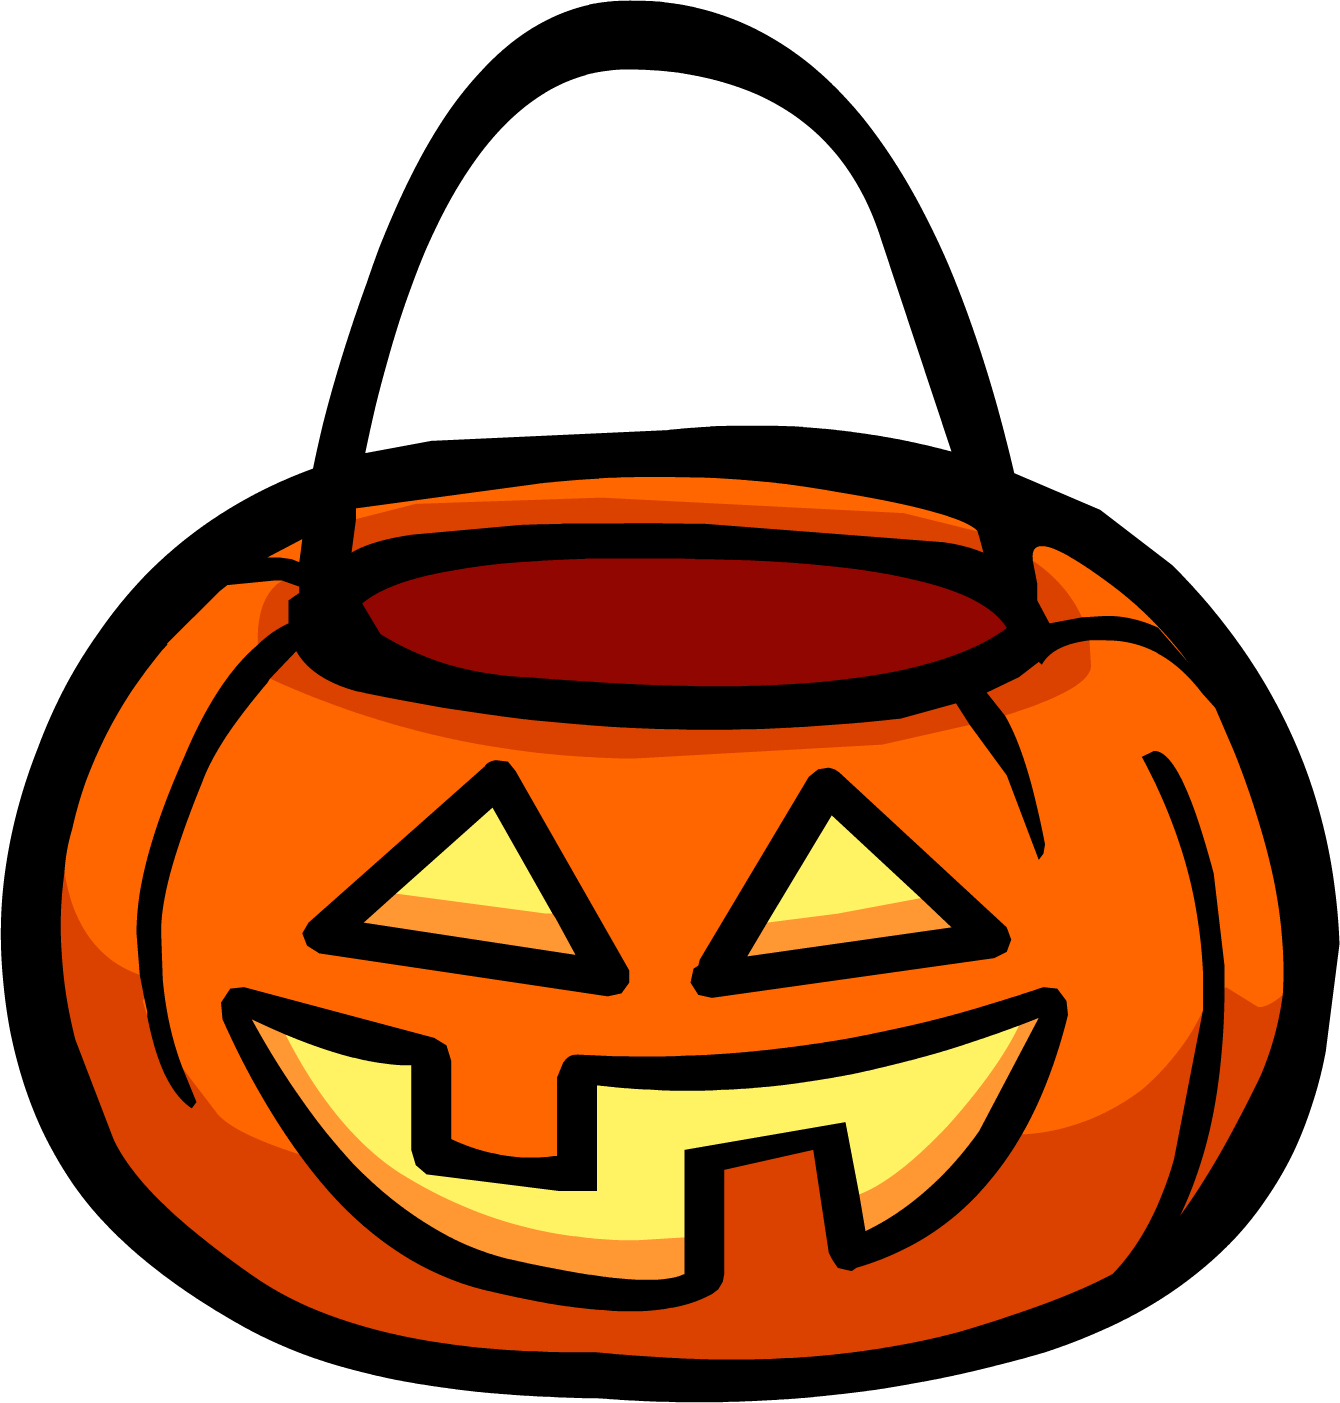 Pumpkin candy clipart png svg library library Pumpkin Basket | Club Penguin Rewritten Wiki | FANDOM powered by Wikia svg library library